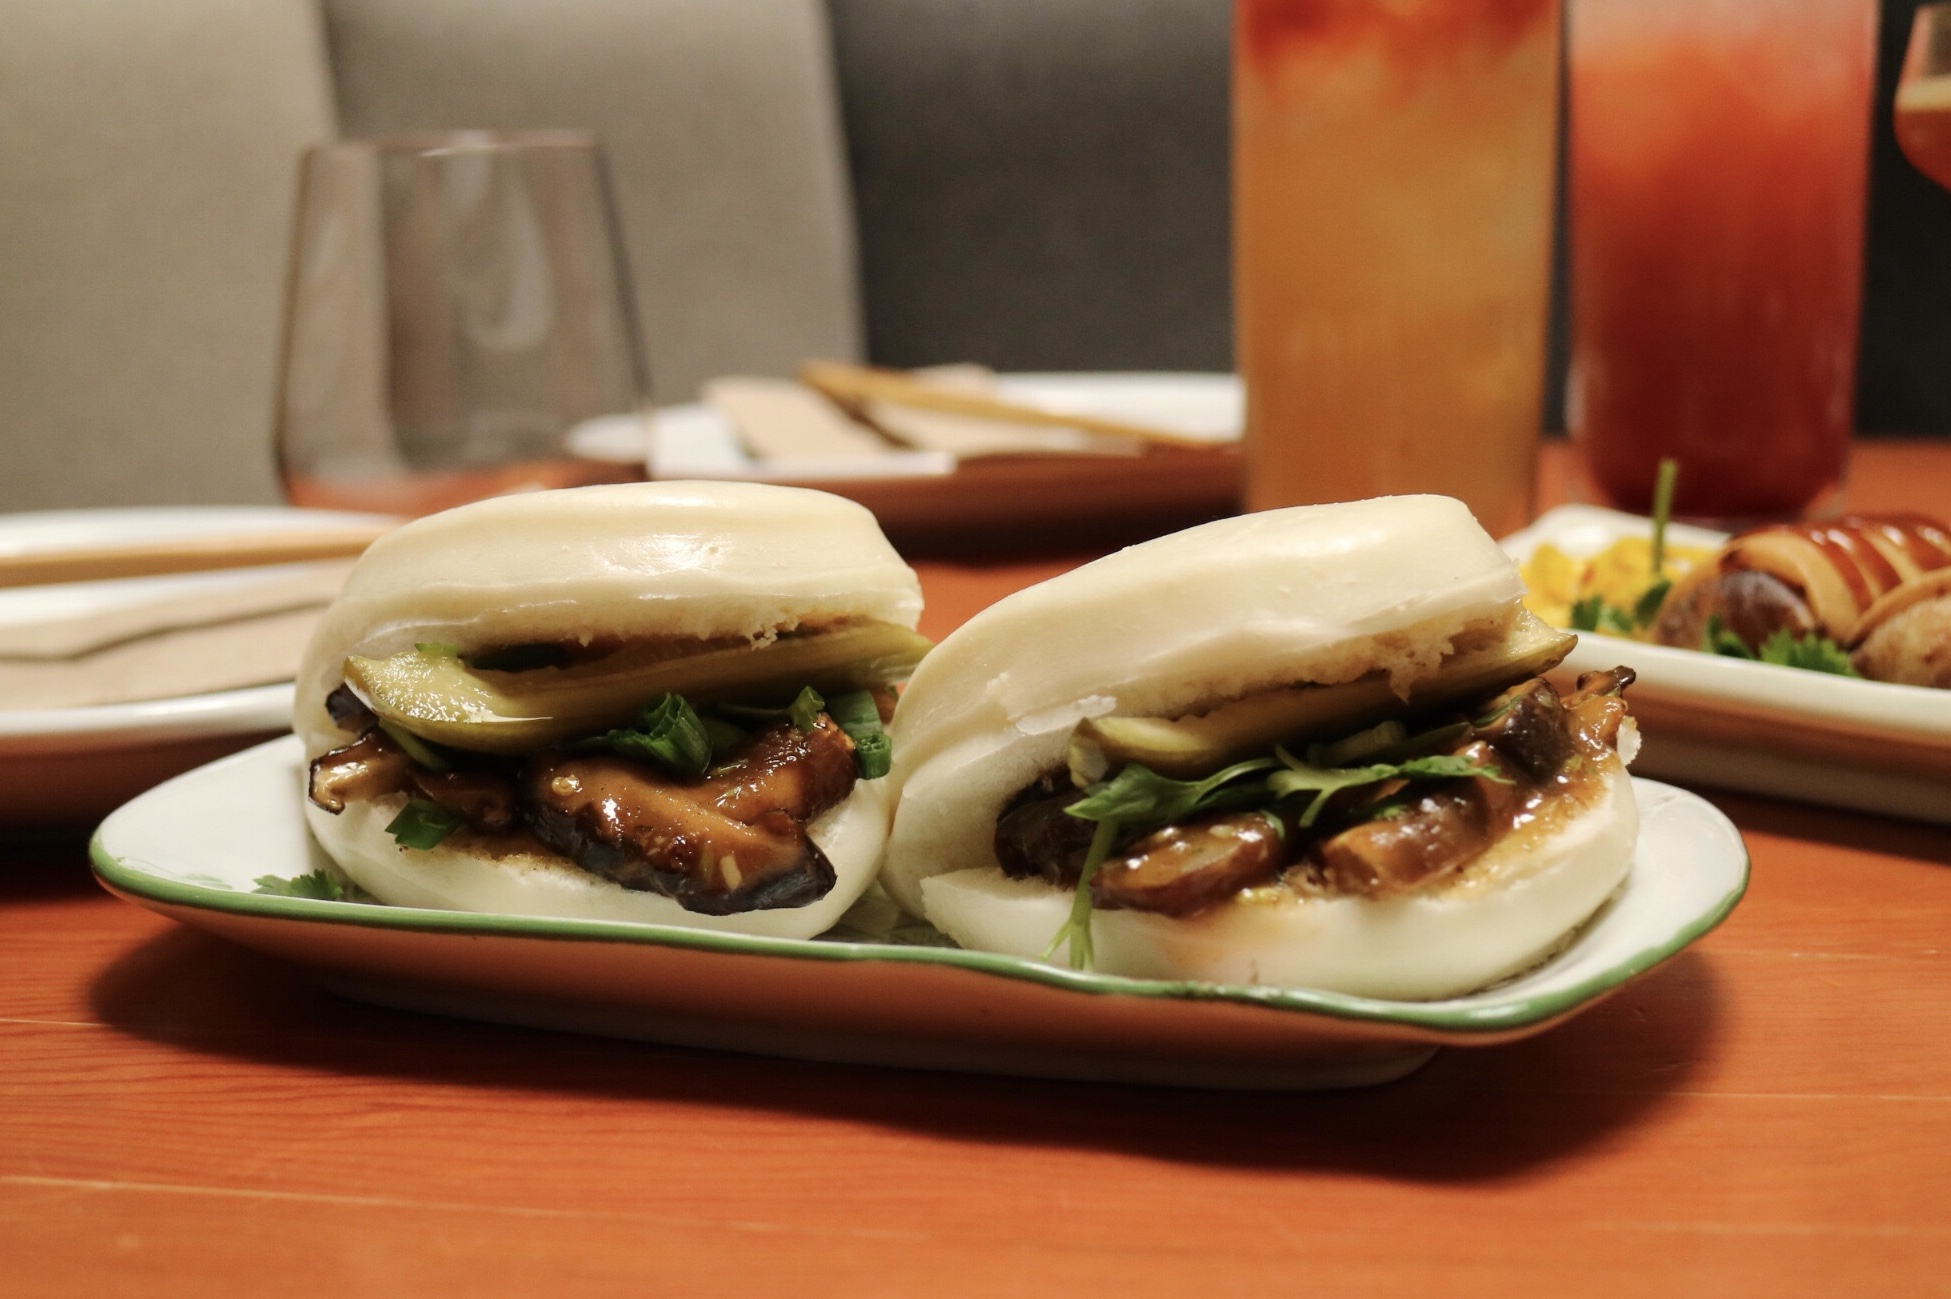 Mantou buns with Shiitake